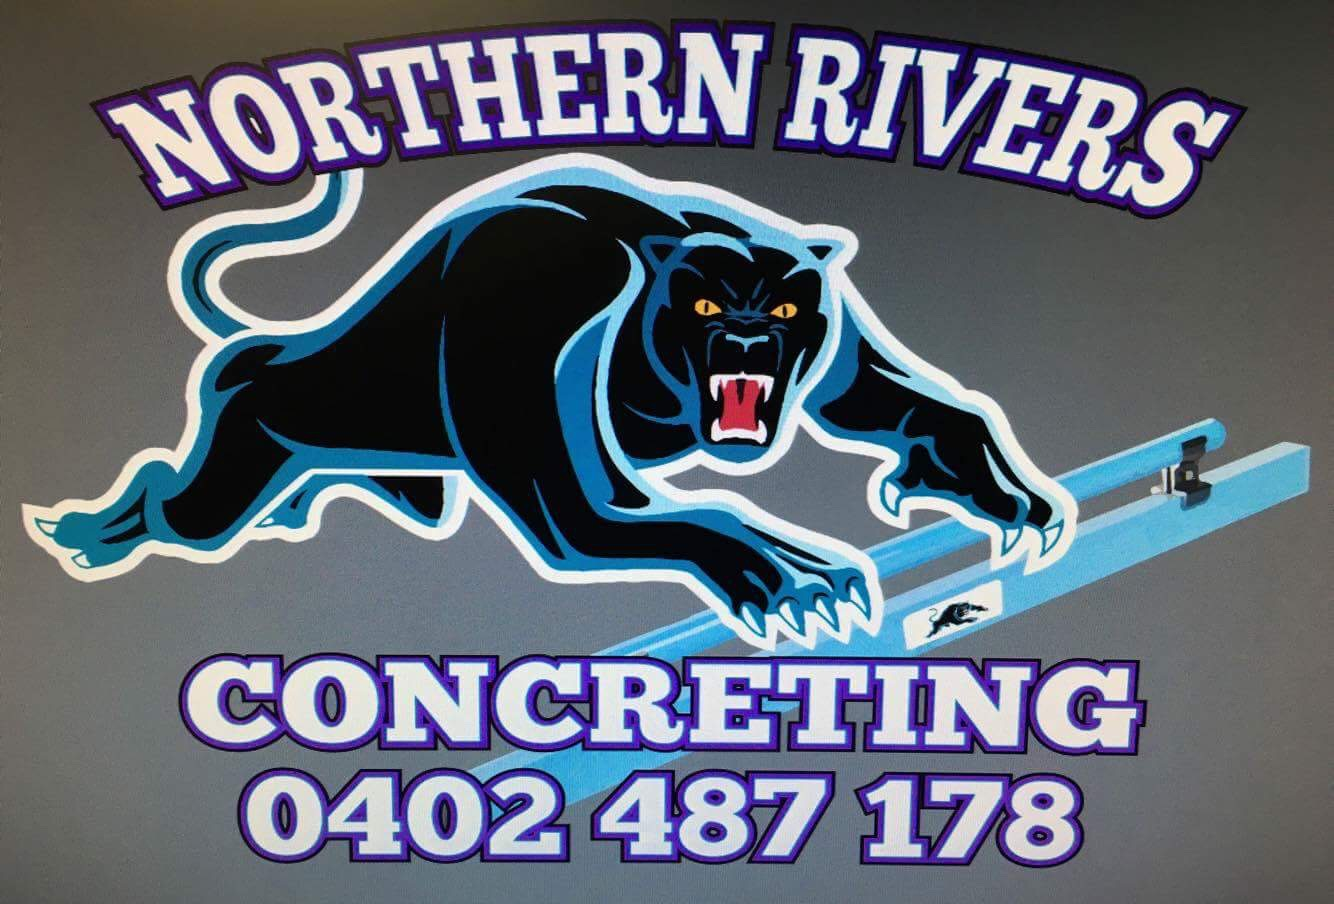 Northern Rivers Concreting